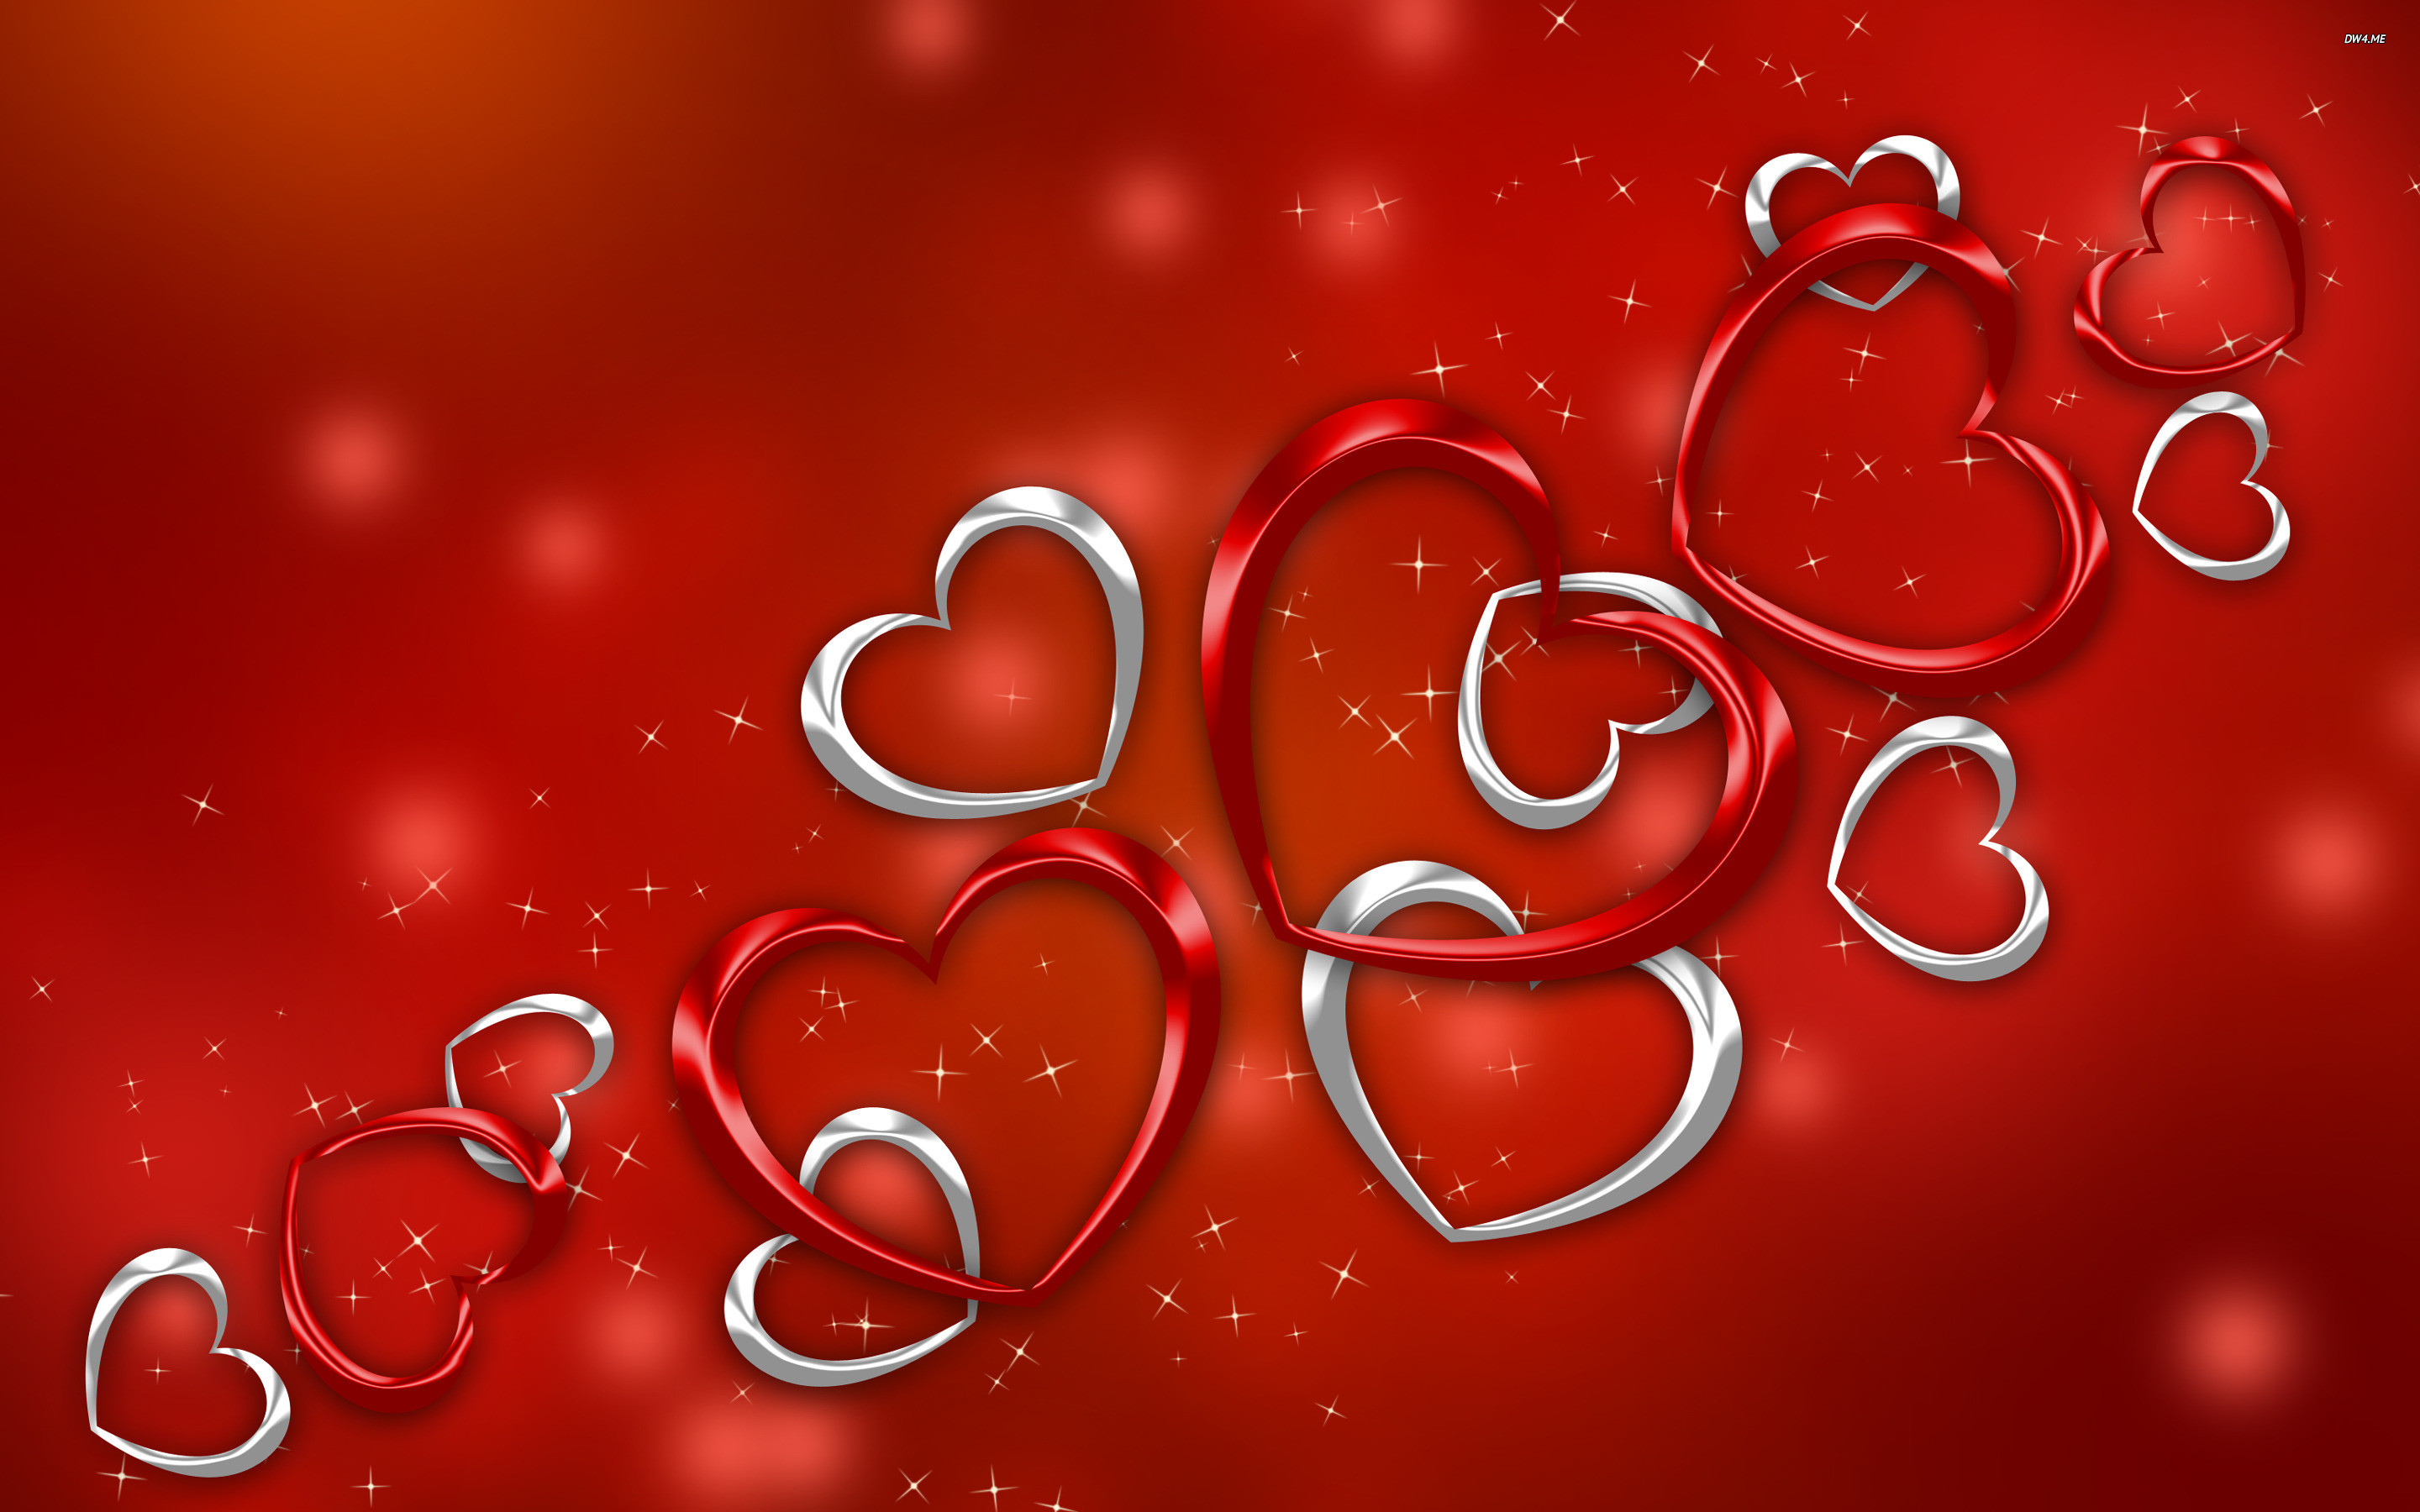 Res: 2880x1800, Graphics, Valentines Day, Text, Love, Heart HD Wallpaper, Holidays & Events  Picture, Background and Image